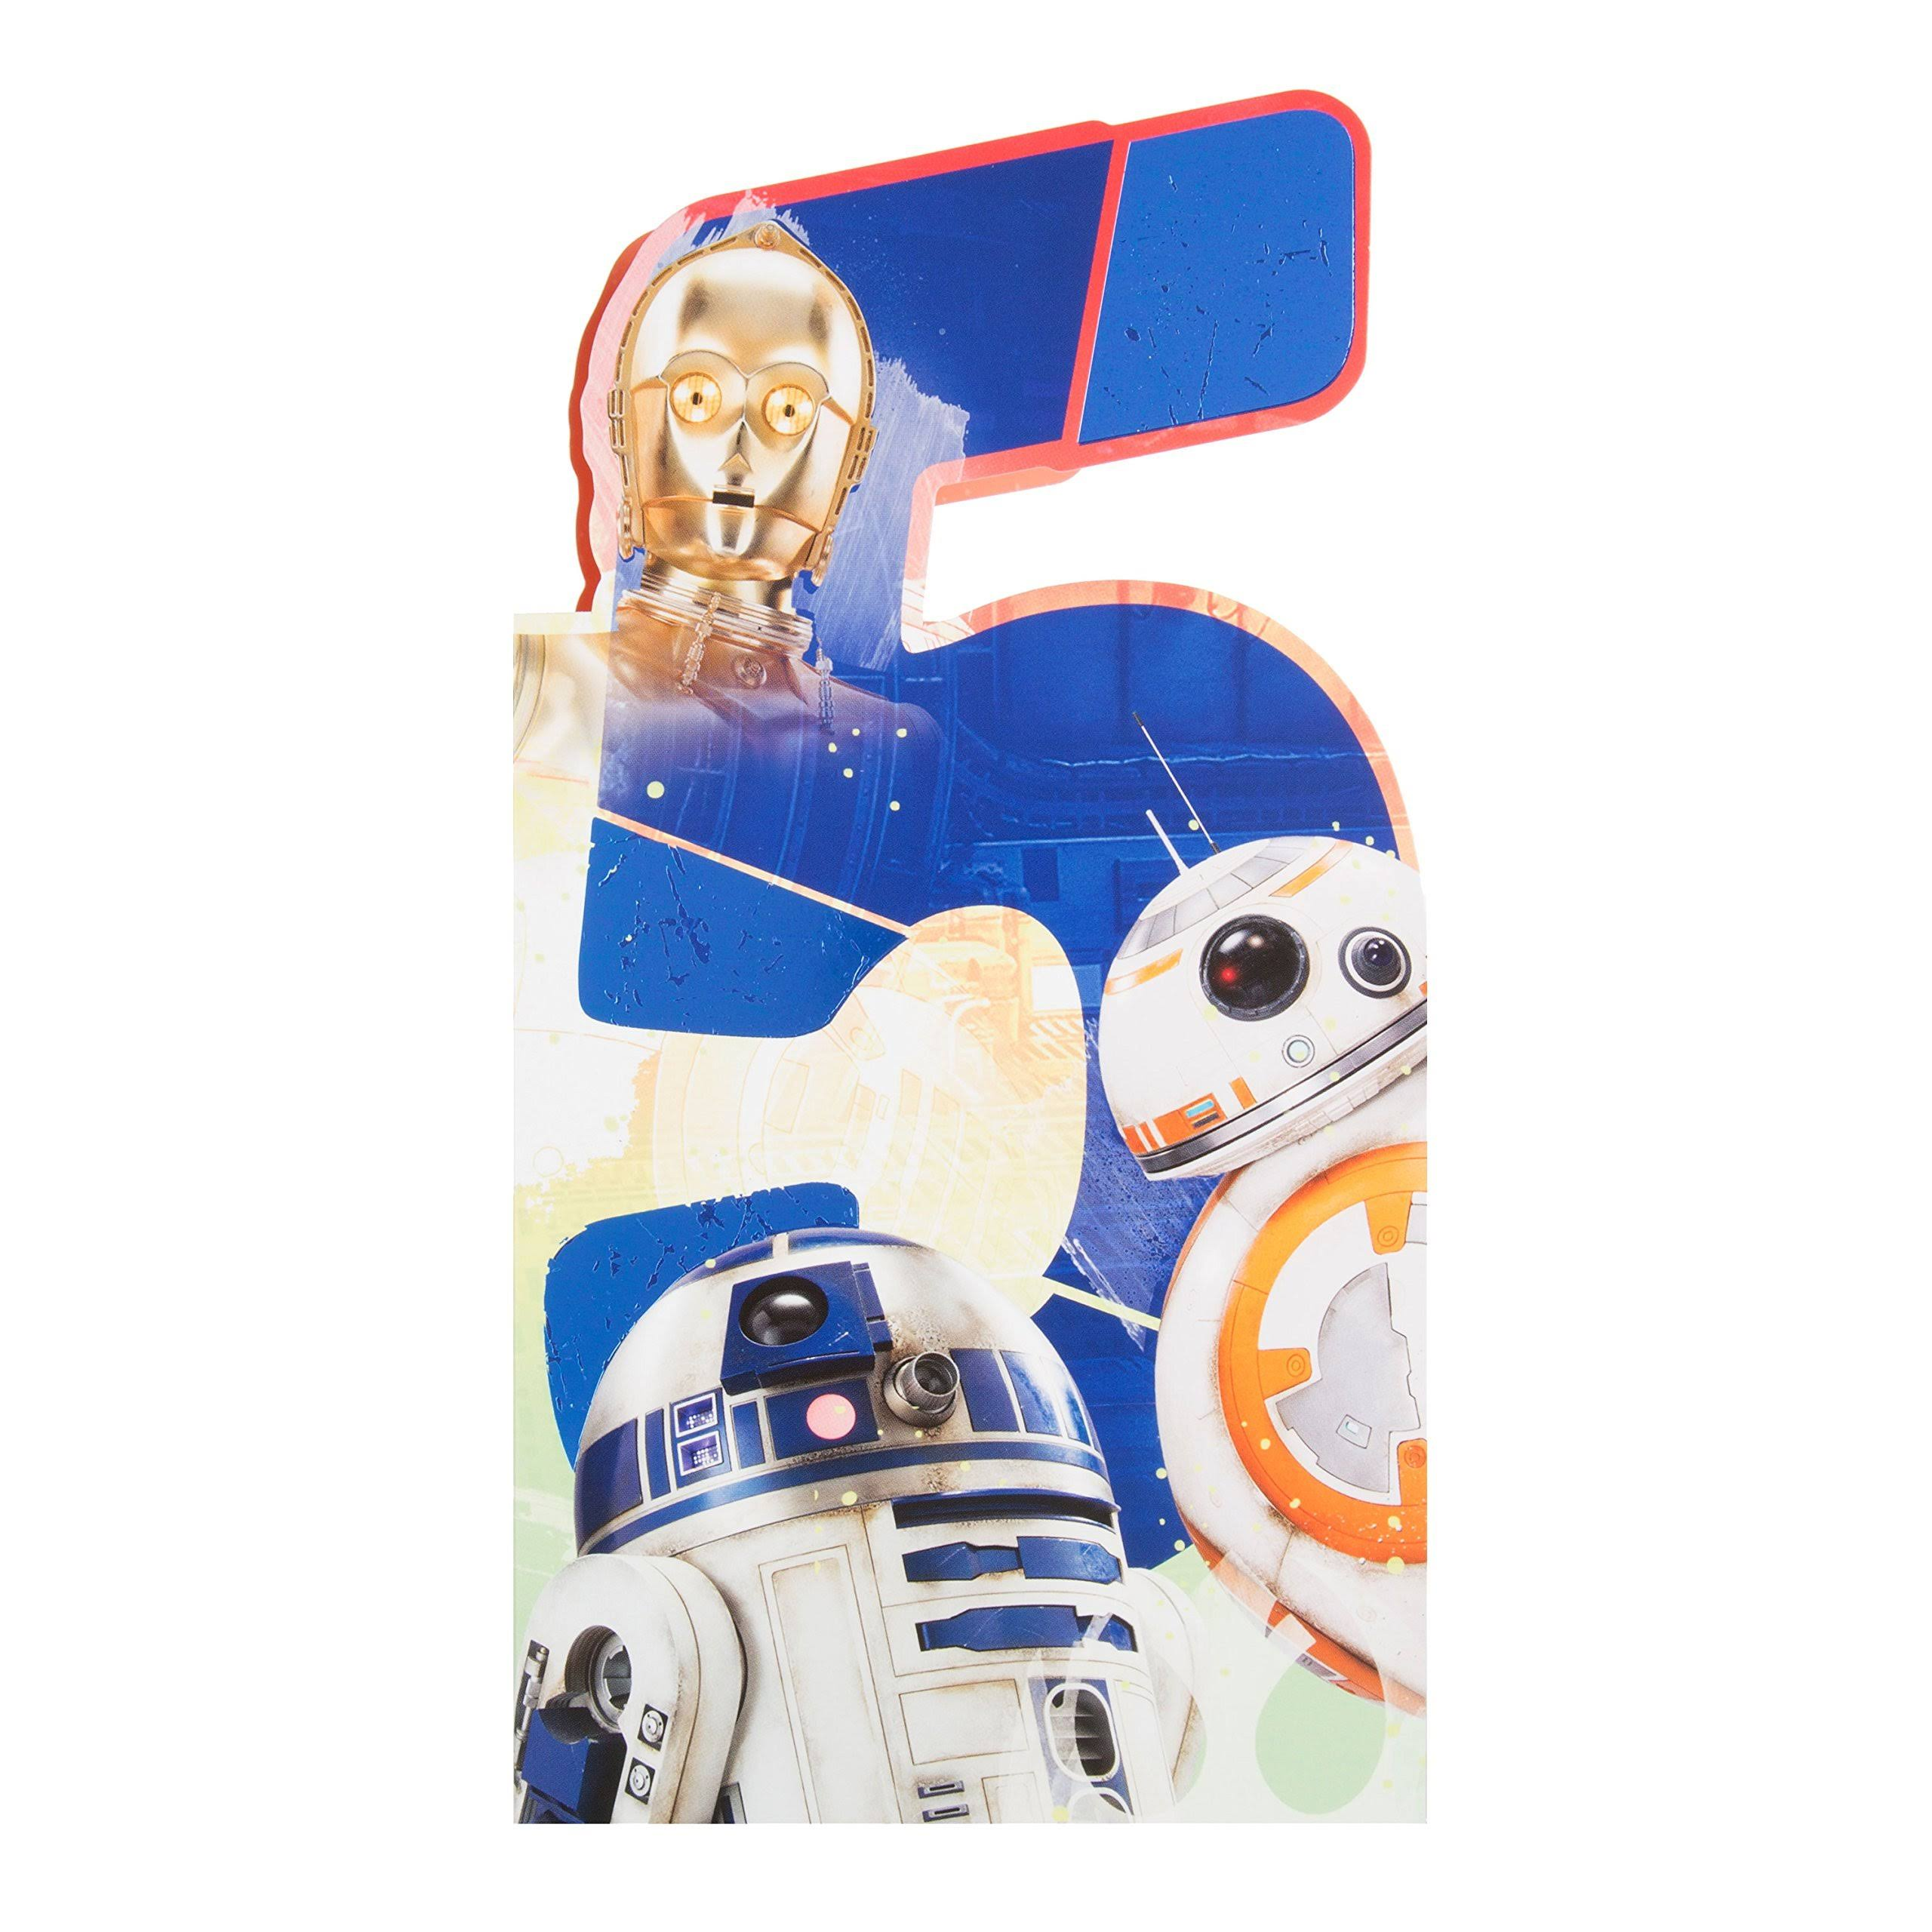 Star Wars Age 5 Shaped Birthday Card